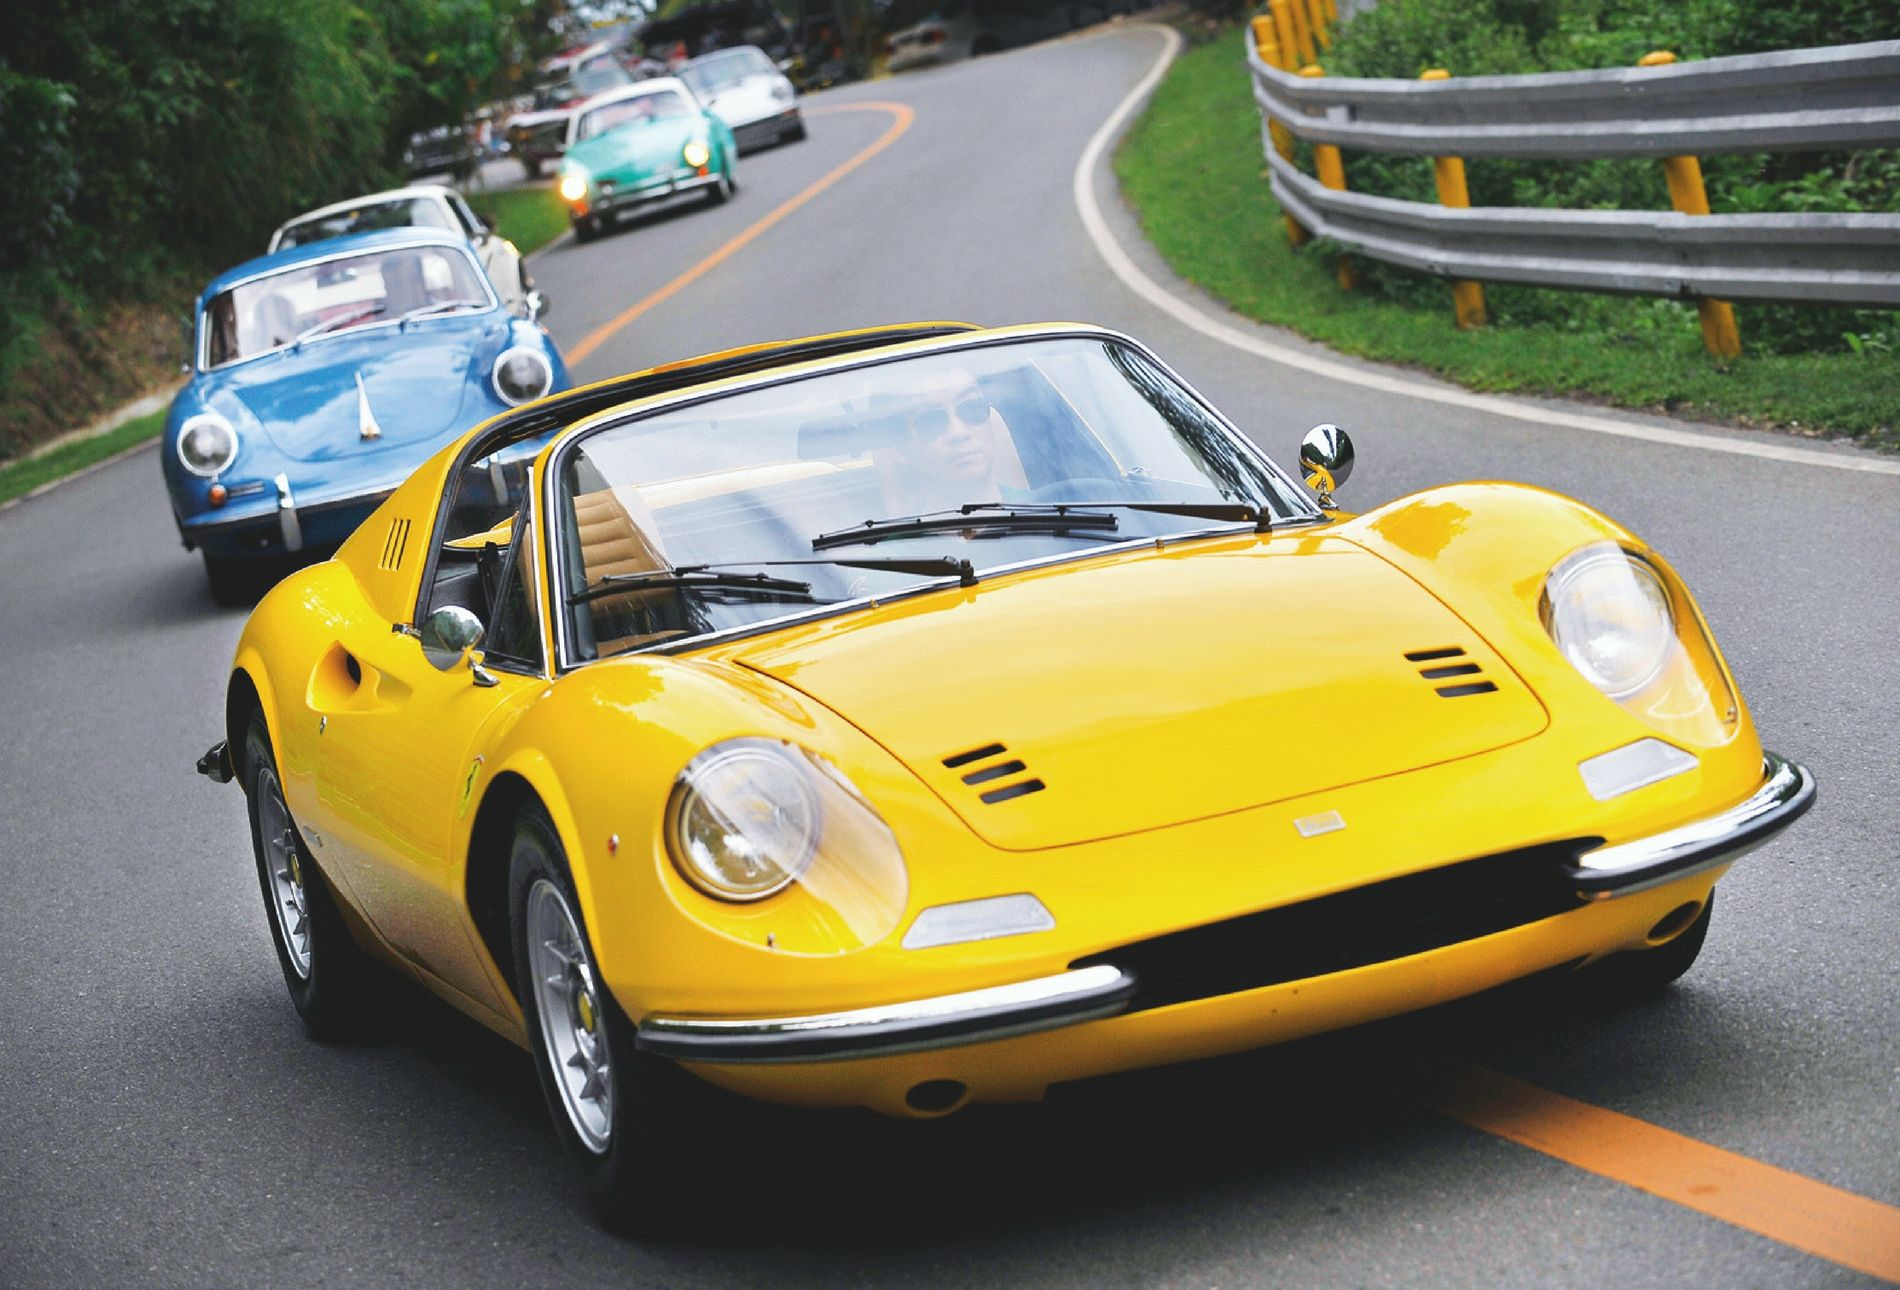 World's Best Drives: A Tropical Road Trip Through Cebu In A Vintage Ferrari Dino